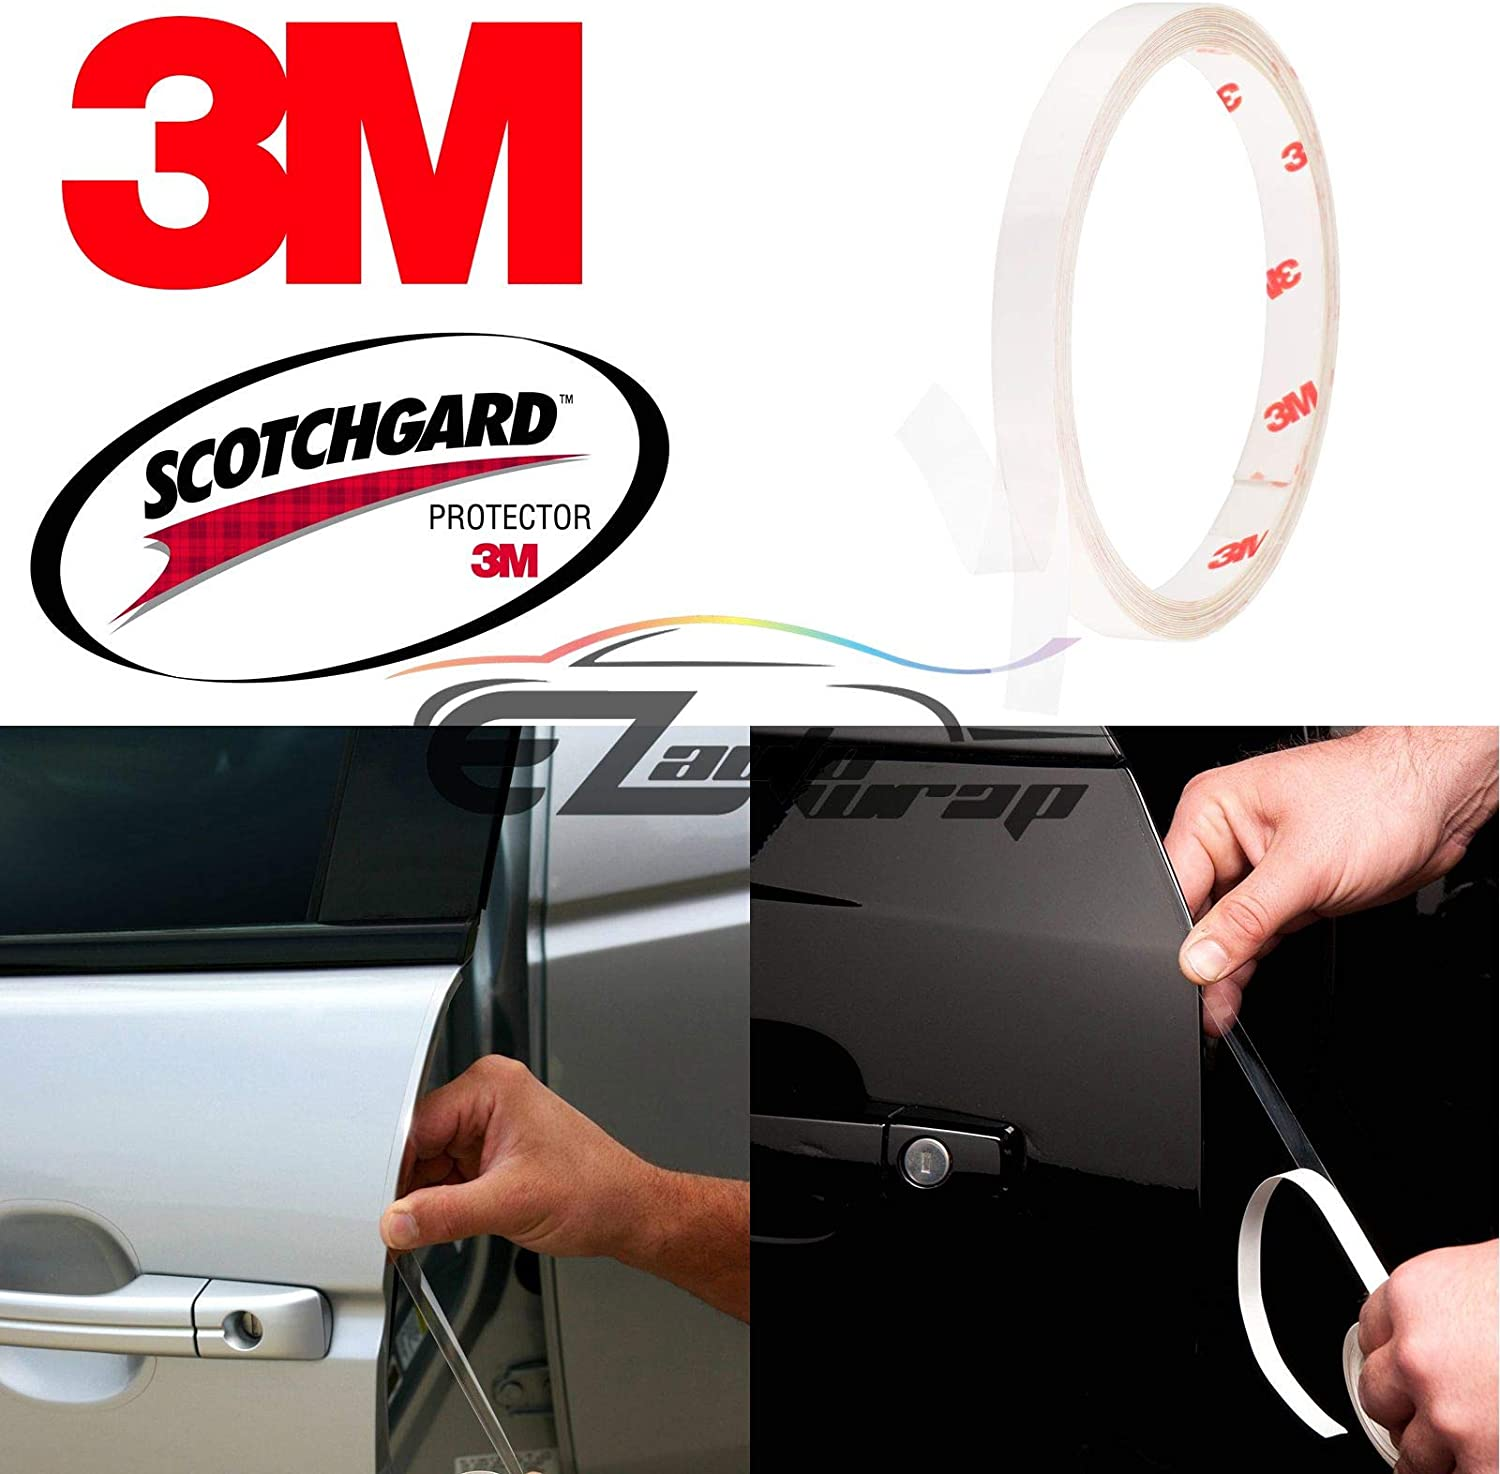 EZAUTOWRAP 120 3M Scotchguard Clear Door Edge Sealer Paint Scratch Protection Guard Film Bra Vinyl DIY Trim Stripe 0.4 Wide